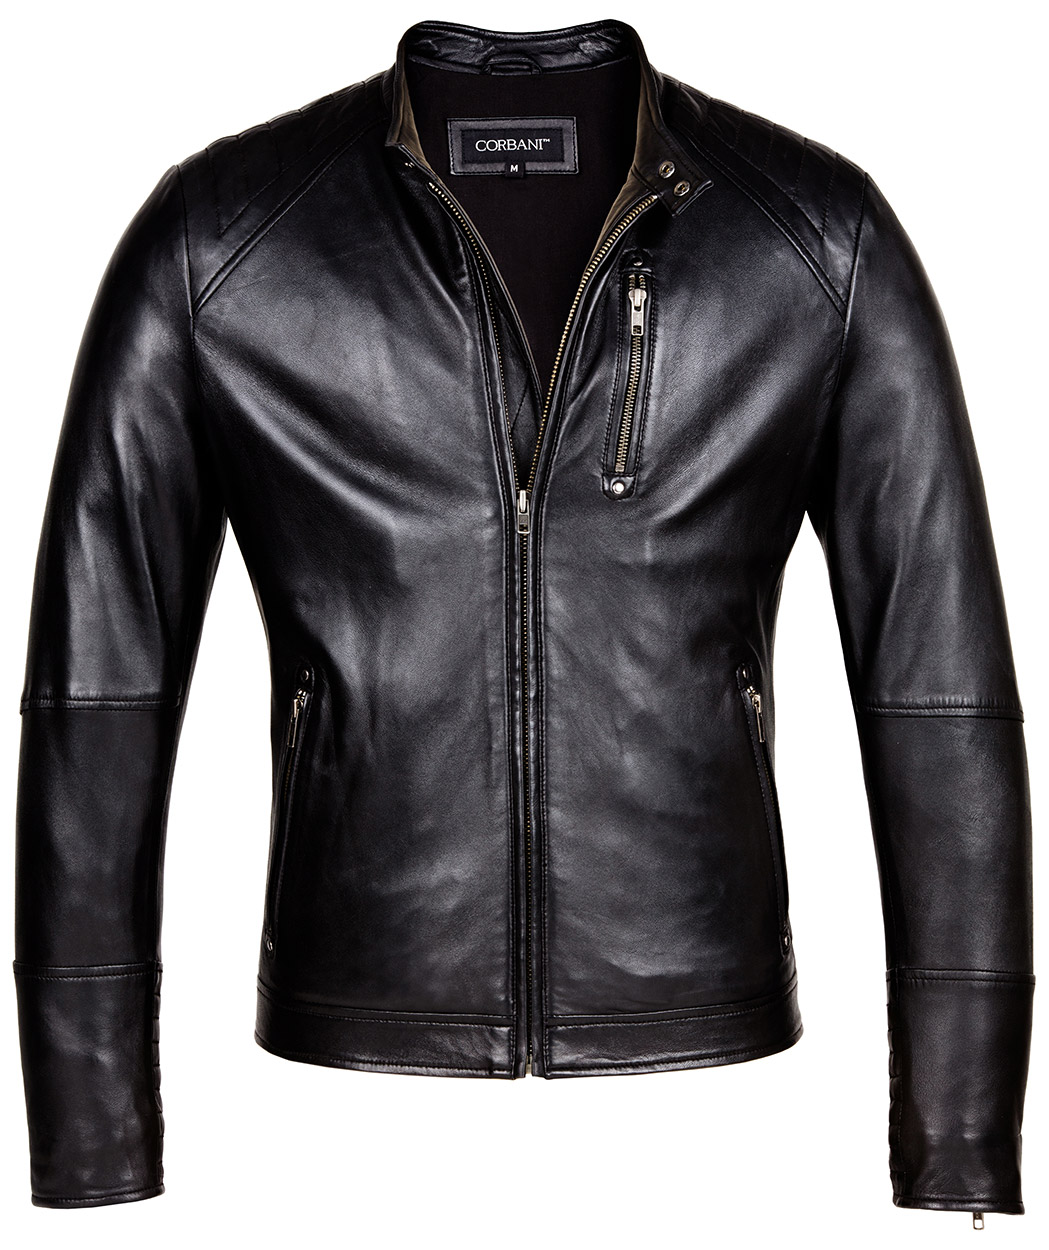 Leather jacket designer